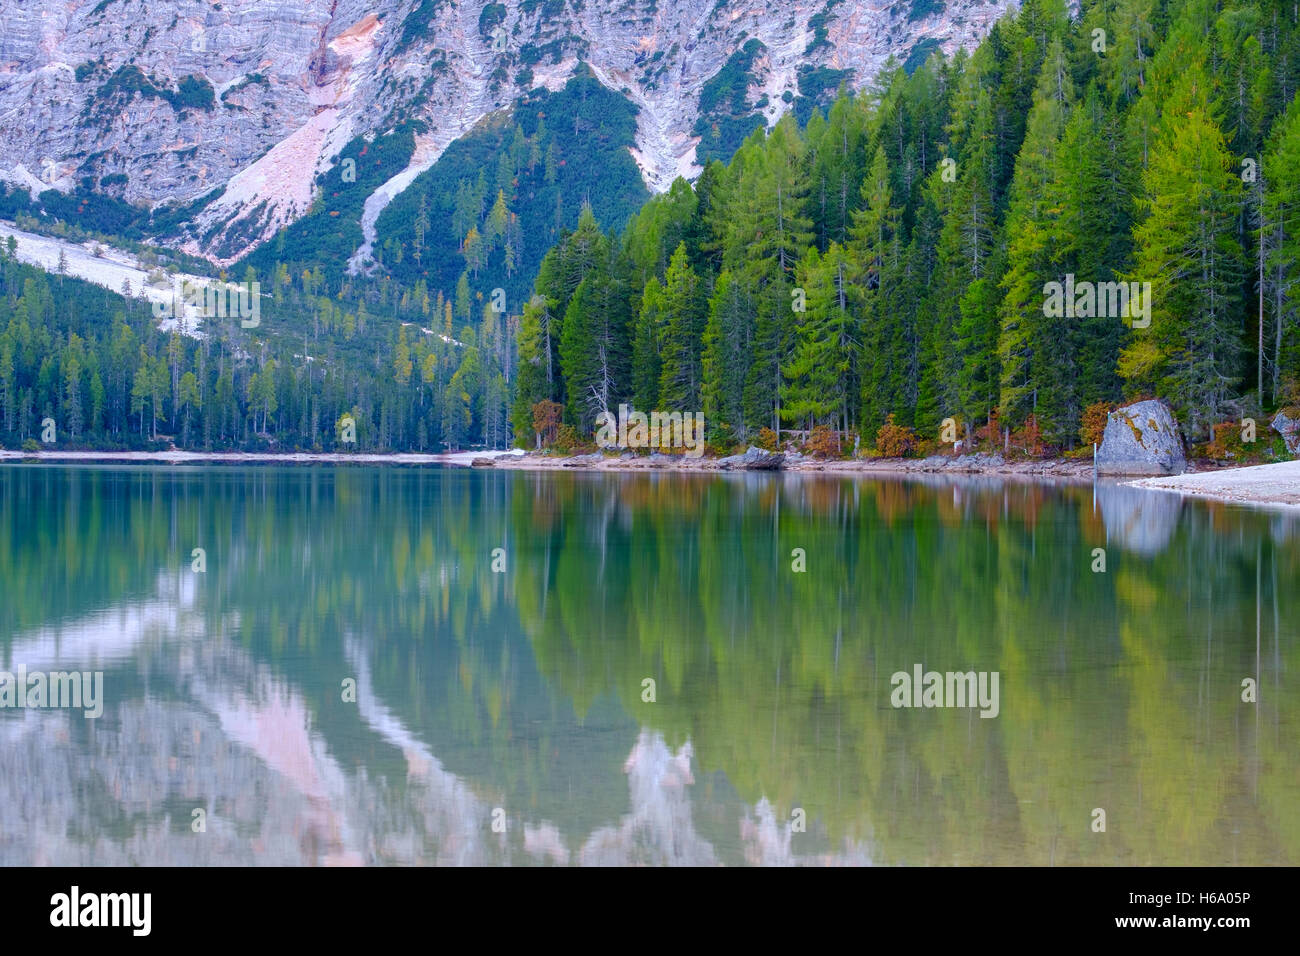 Braies Lake ( Pragser Wildsee ) in Dolomites mountains, Sudtirol, Italy - Stock Image